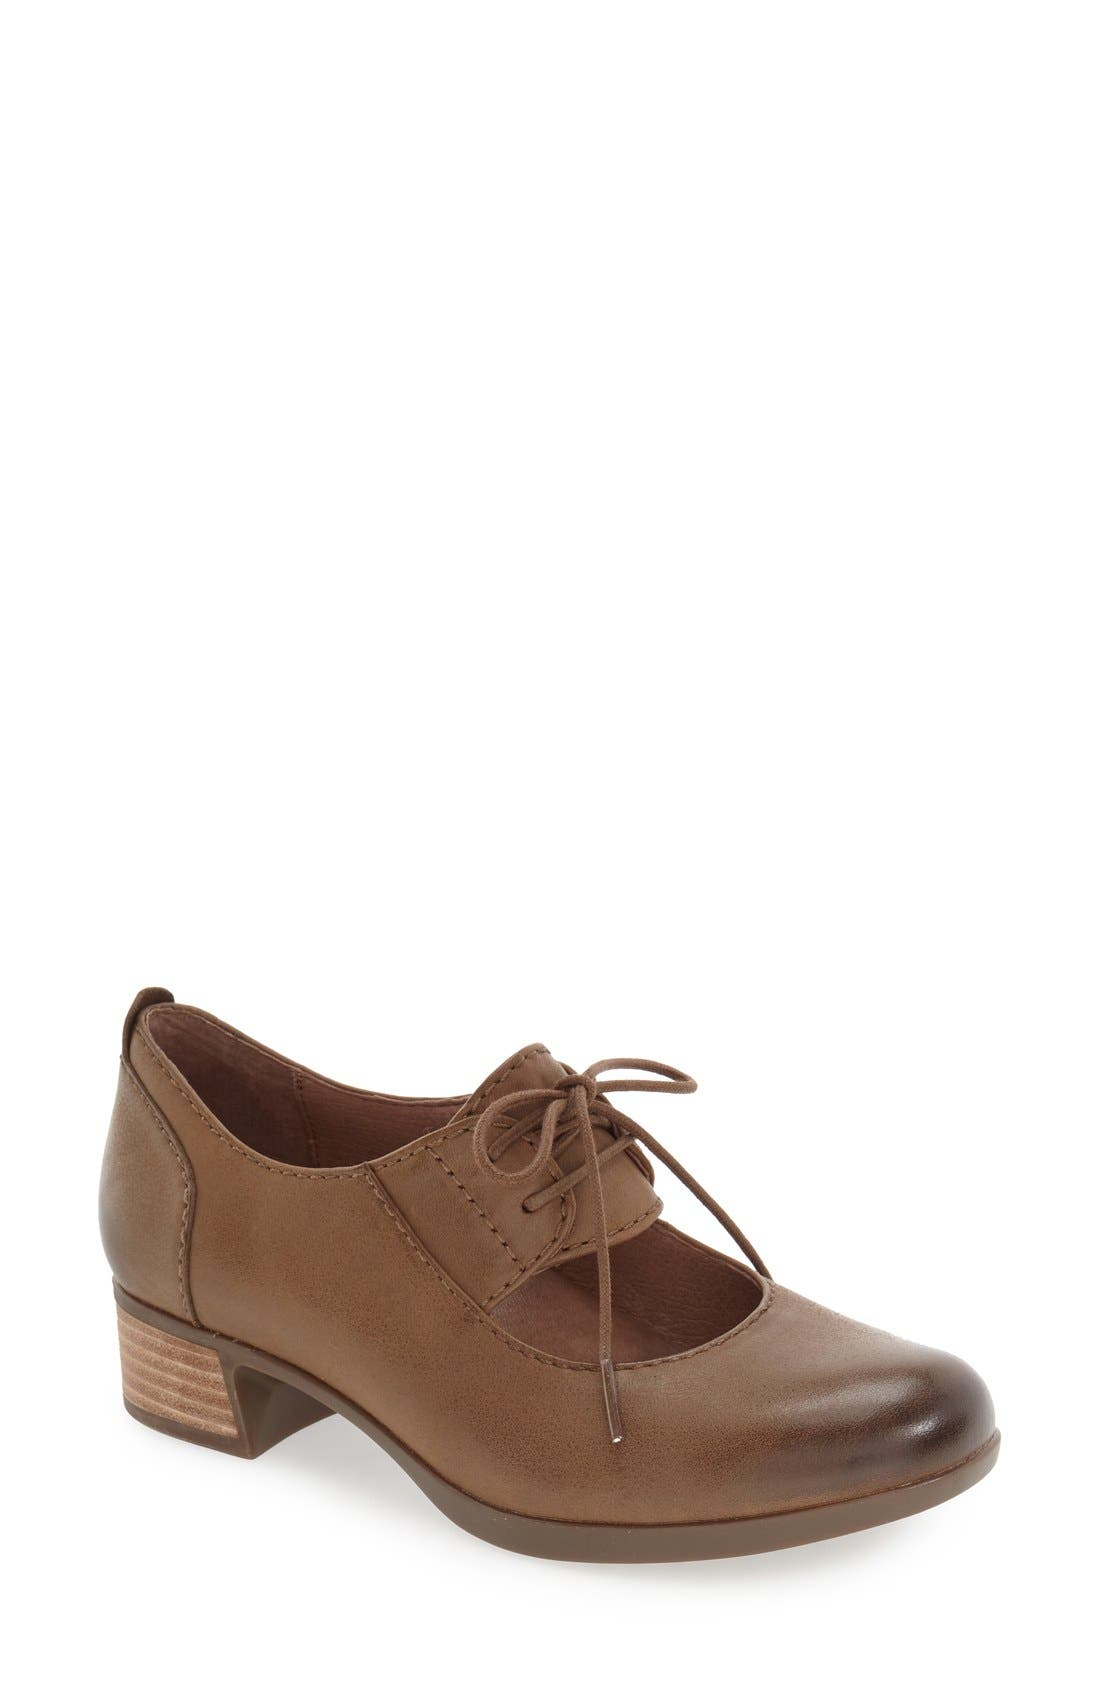 'Linda' Lace-Up Pump,                         Main,                         color, Taupe Burnished Leather